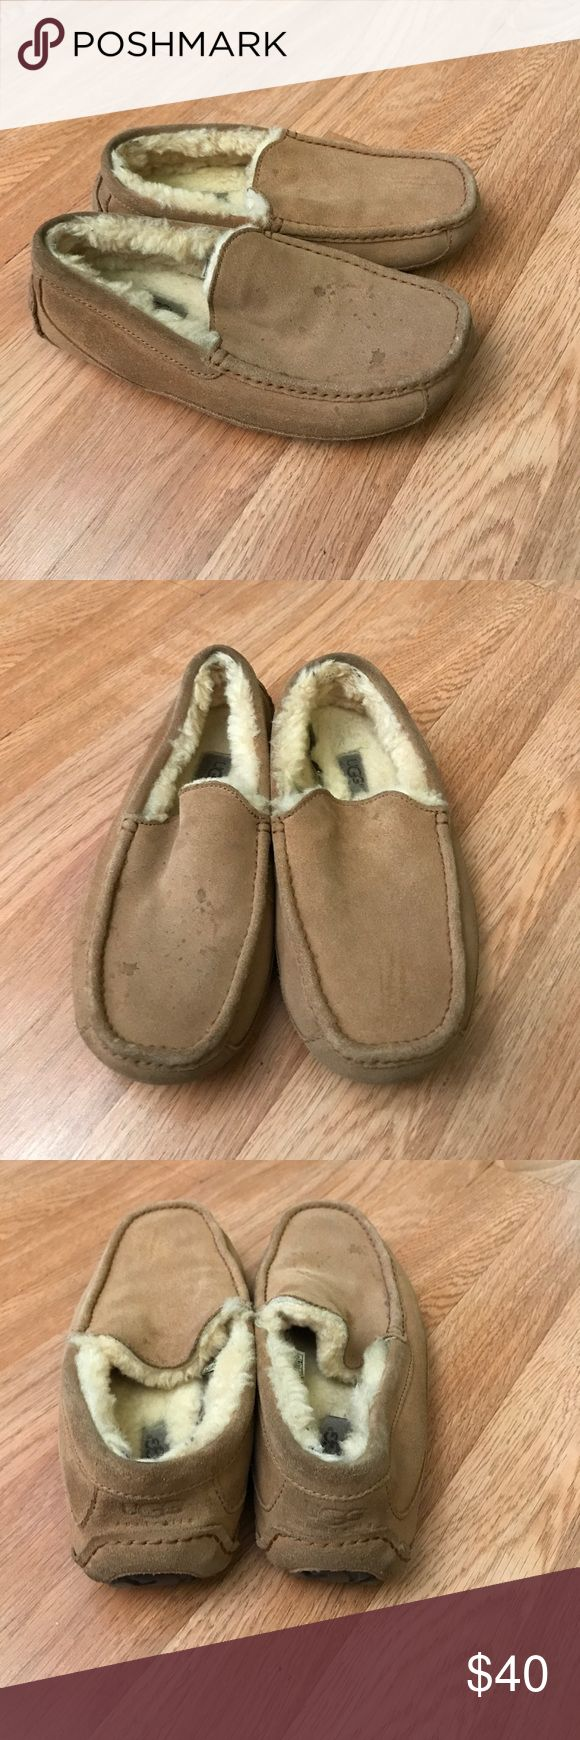 Ugg men's slippers size 8 In good condition very comfortable UGG Shoes